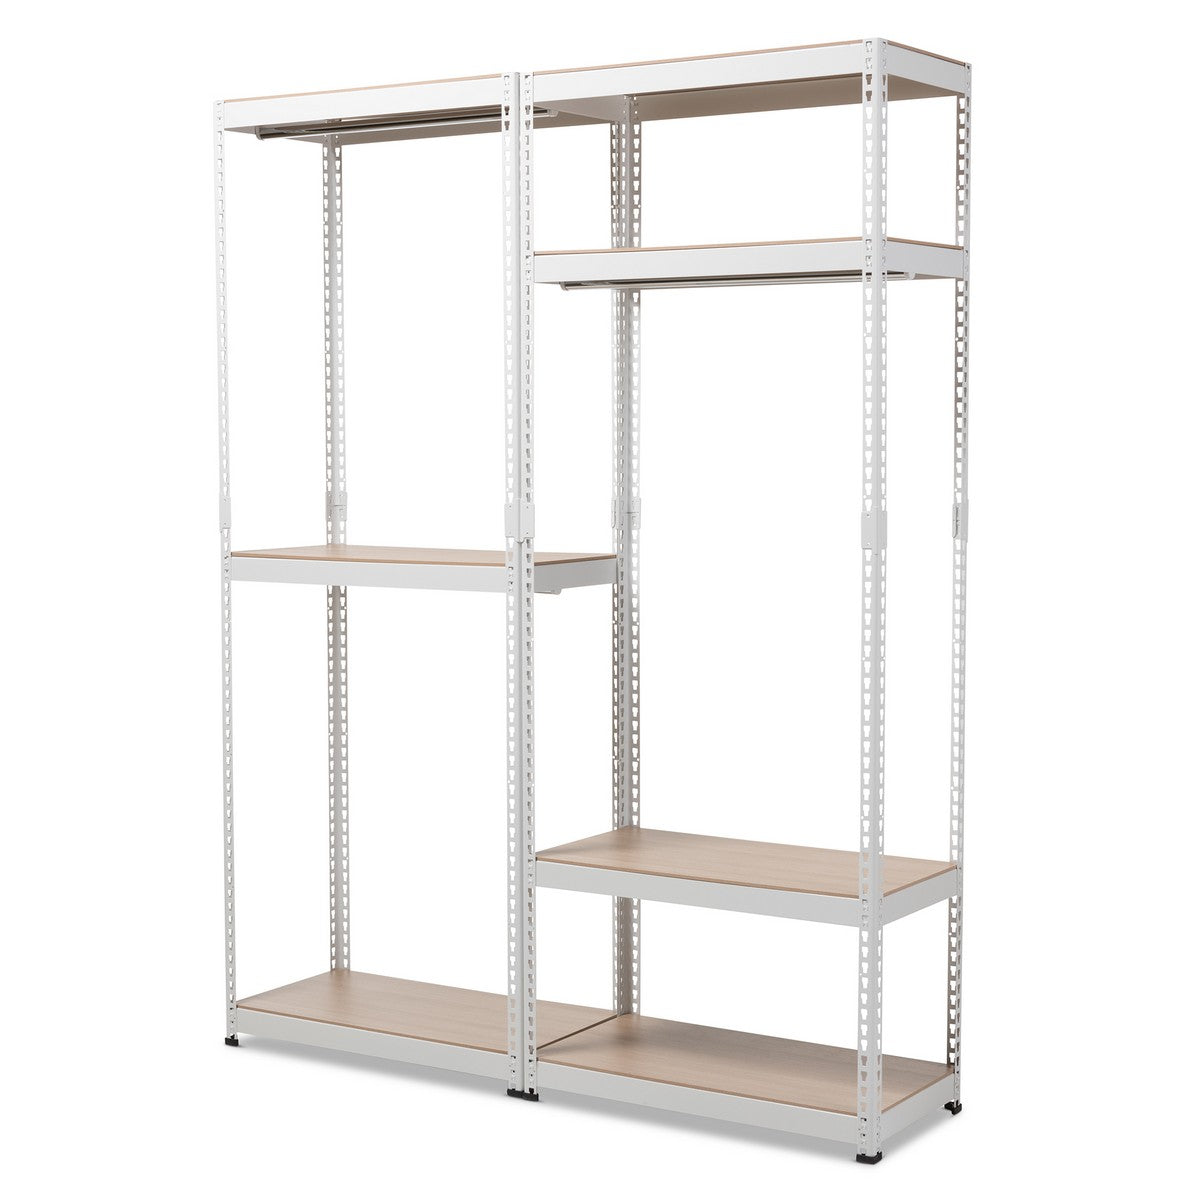 Baxton Studio Gavin White Metal 7-Shelf Closet Storage Racking Organizer Baxton Studio-Multipurpose-Minimal And Modern - 1